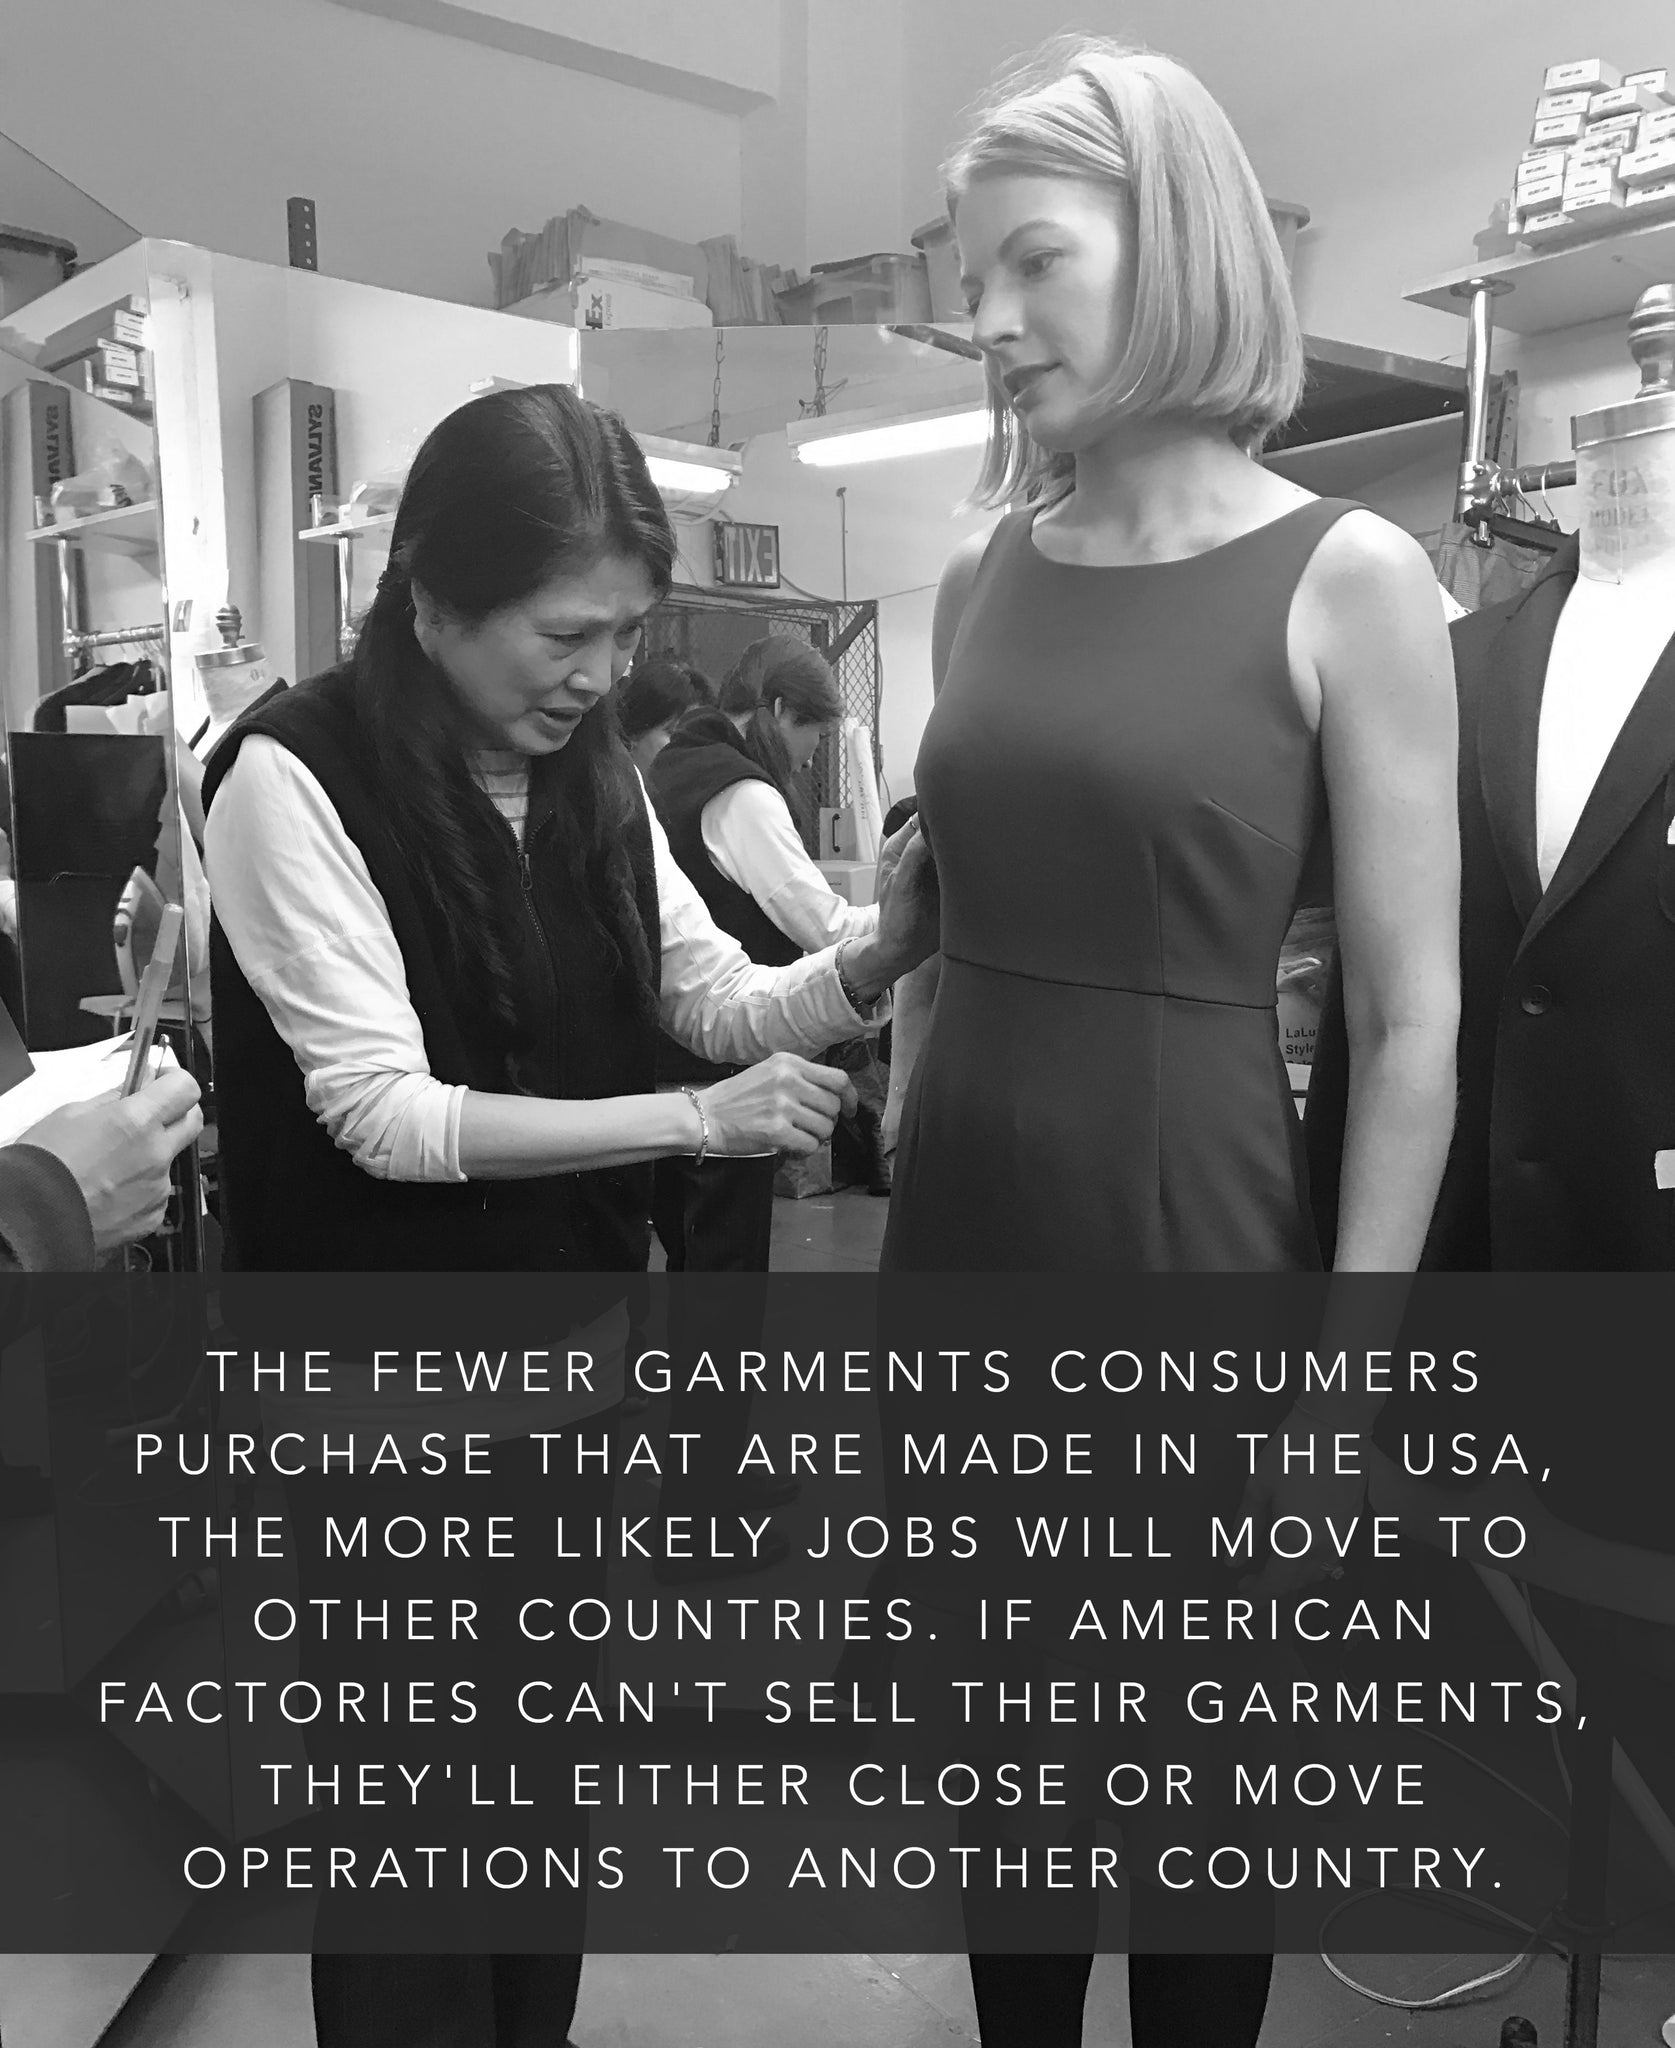 The fewer garments consumers purchase that are made in the USA, the more likely jobs will move to other countries. If American factories can't sell their garments, they'll either close or move operations to another country.